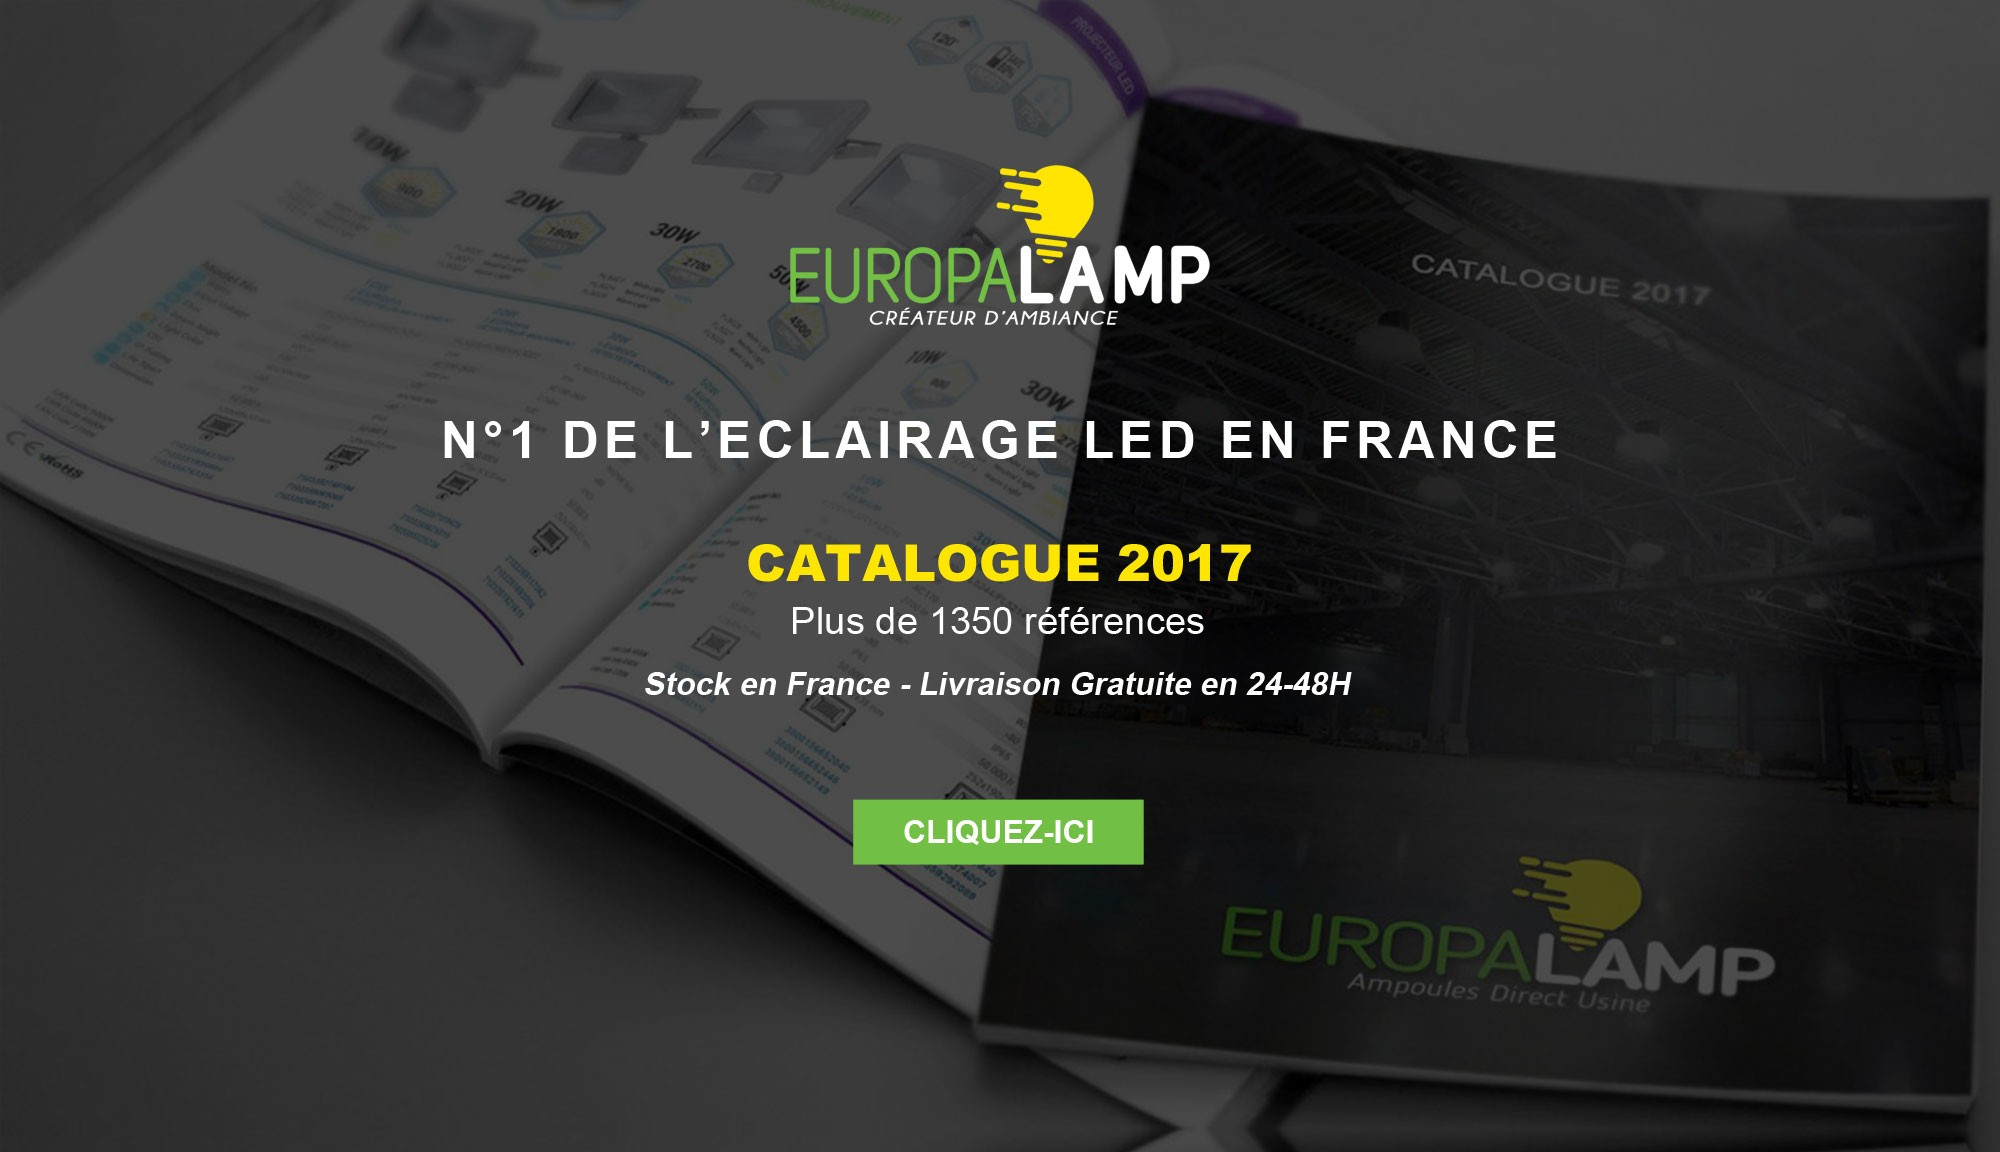 Europalamp N°1 de l'Eclairage LED en France